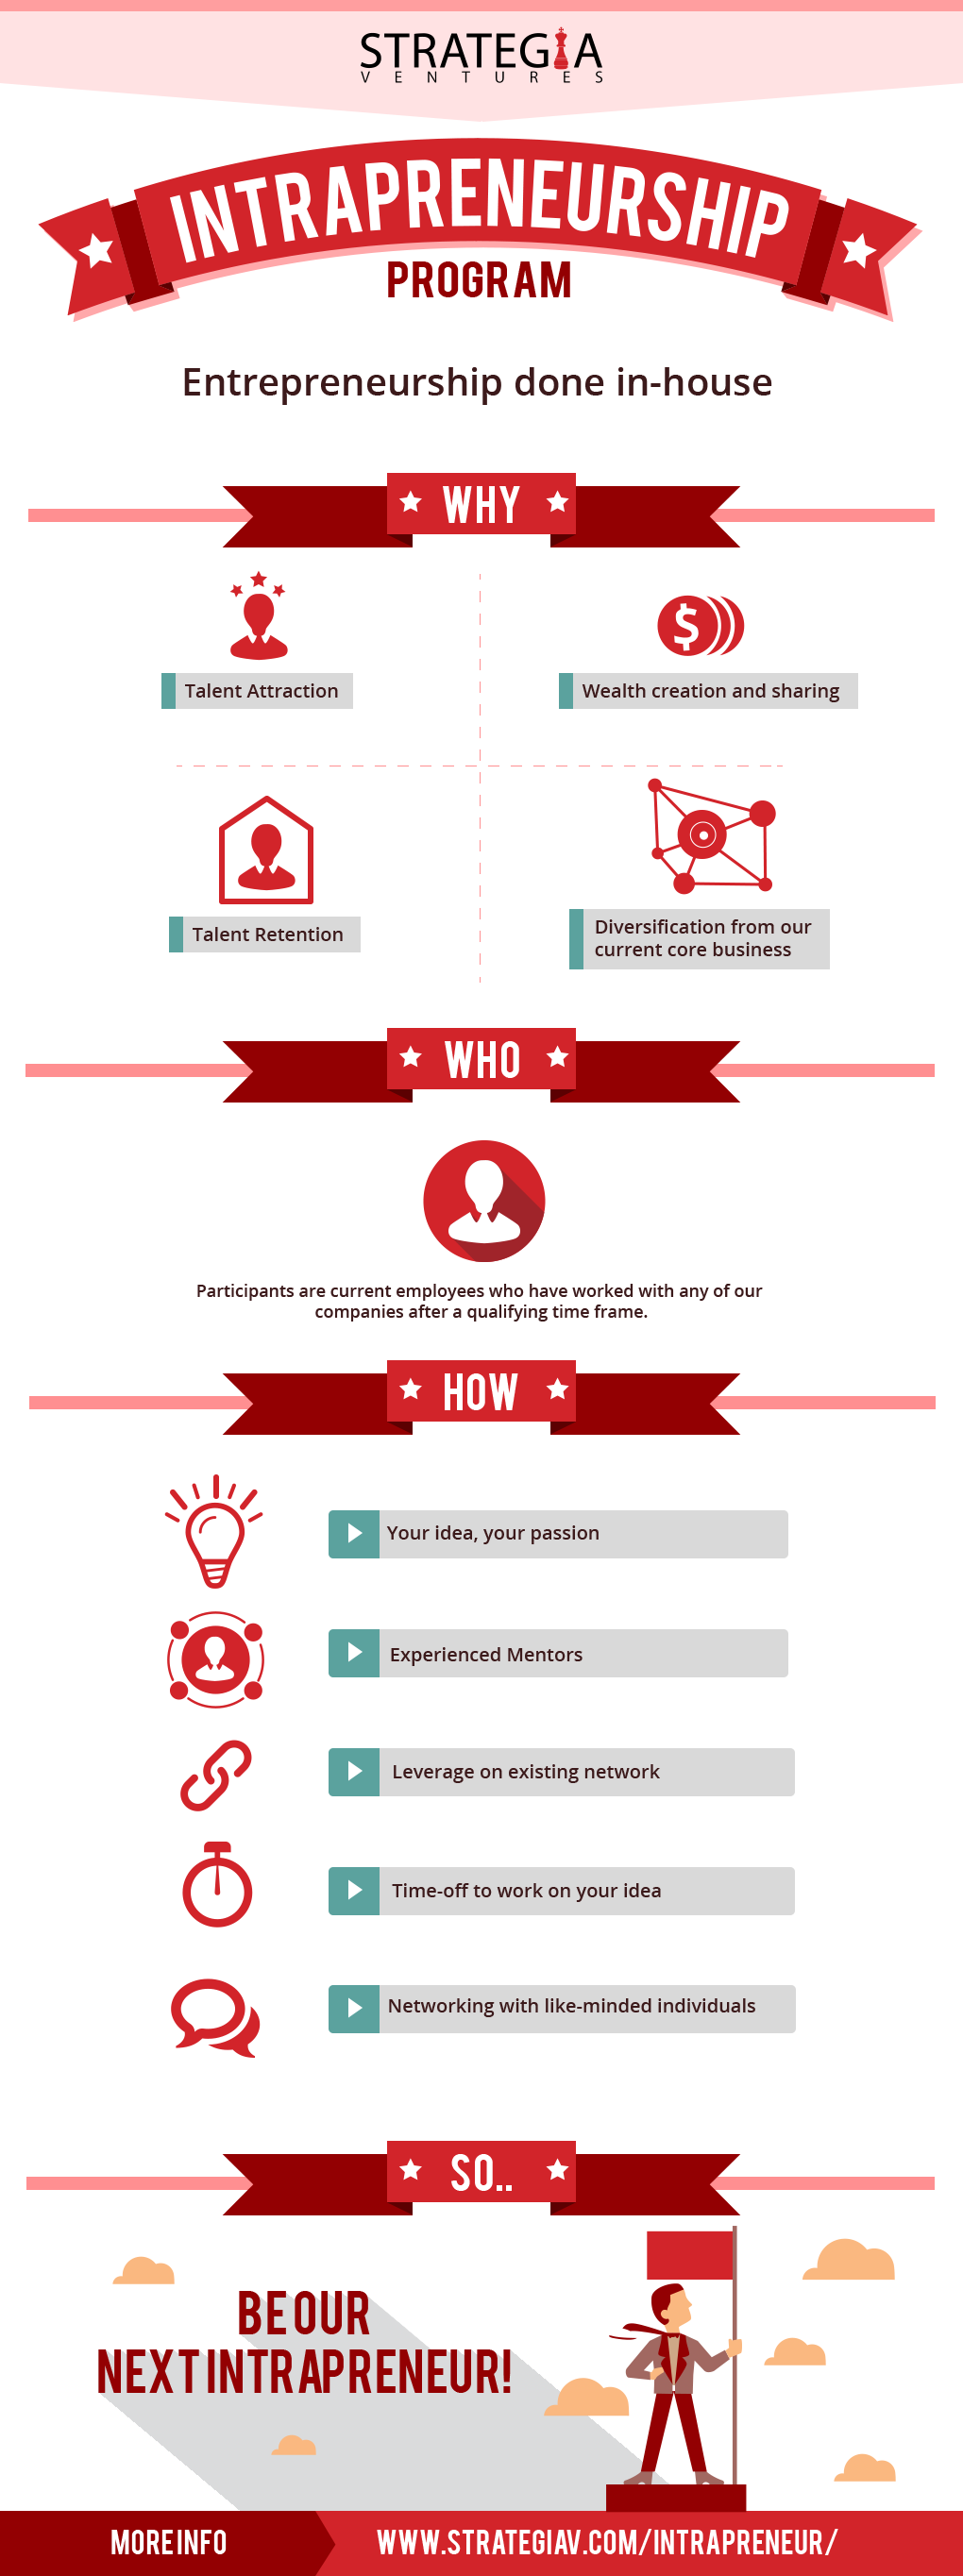 intrapreneurship-infographic-strategia-ventures